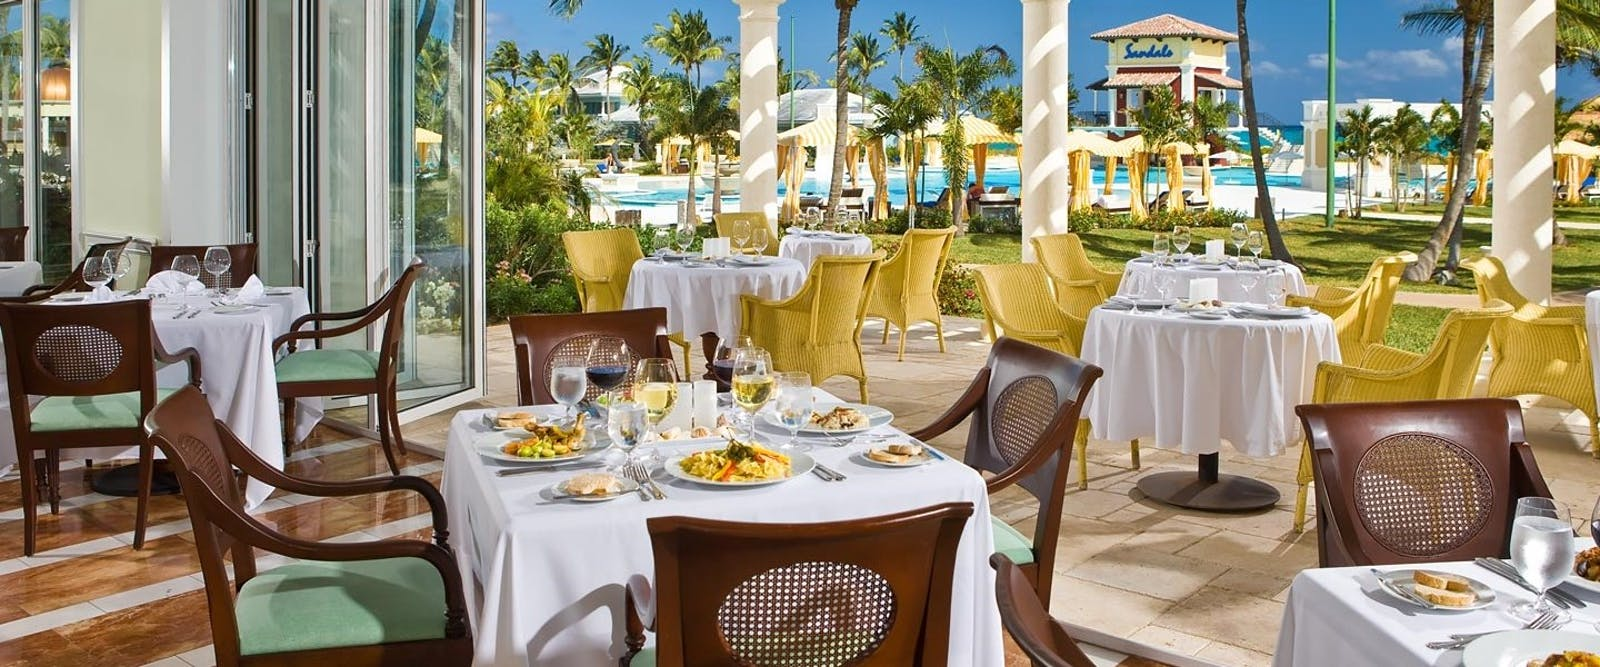 Il Cielo Restaurant at Sandals Emerald Bay Golf, Tennis & Spa Resort, Bahamas, Caribbean